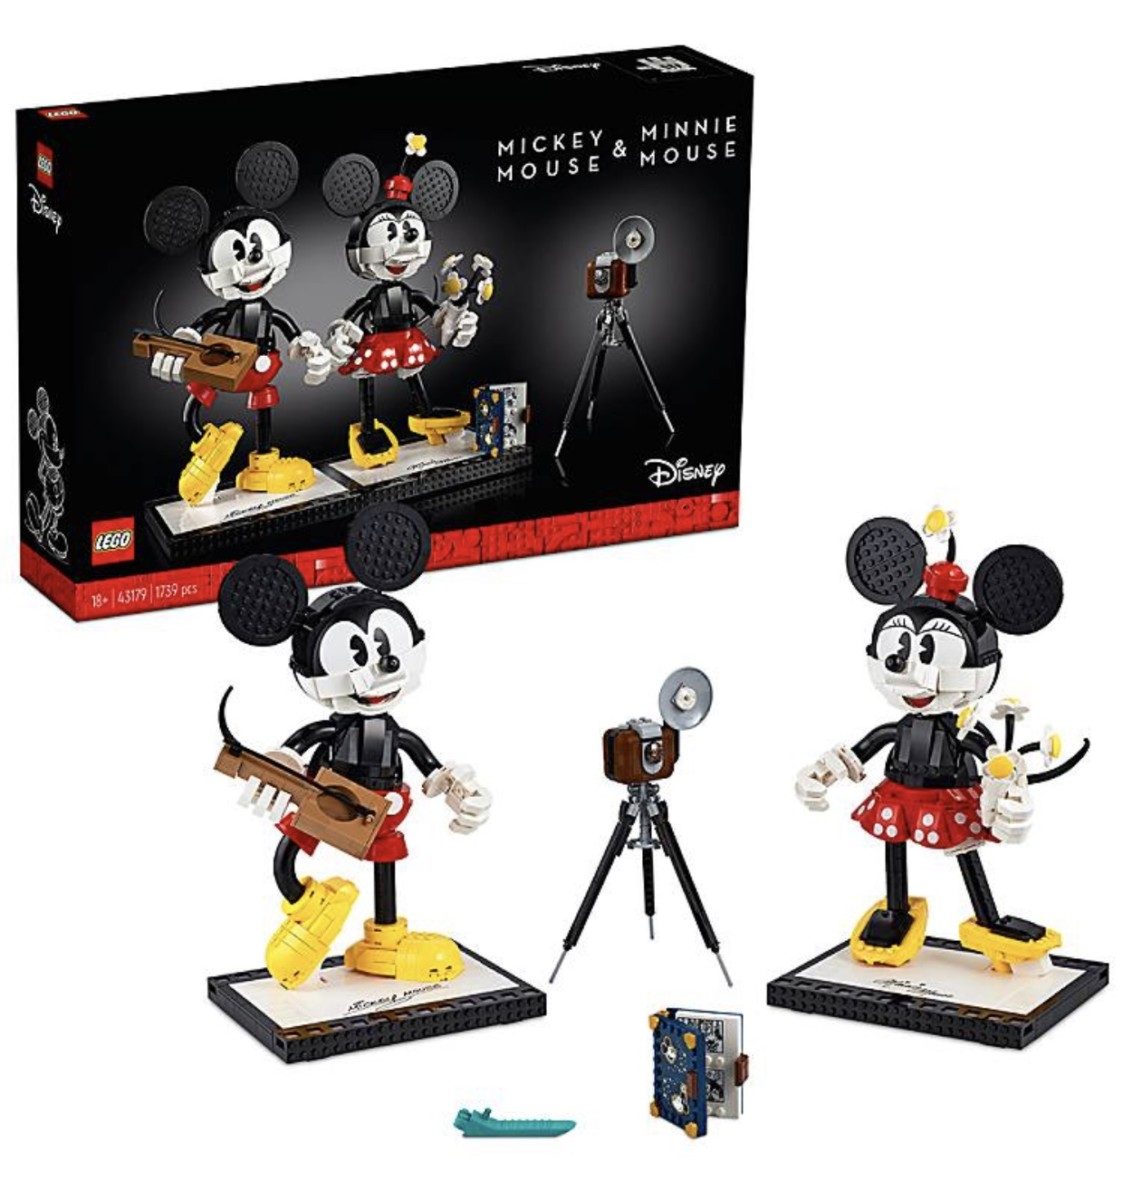 New Mickey and Minnie LEGO Pre-order on shopDisney 2